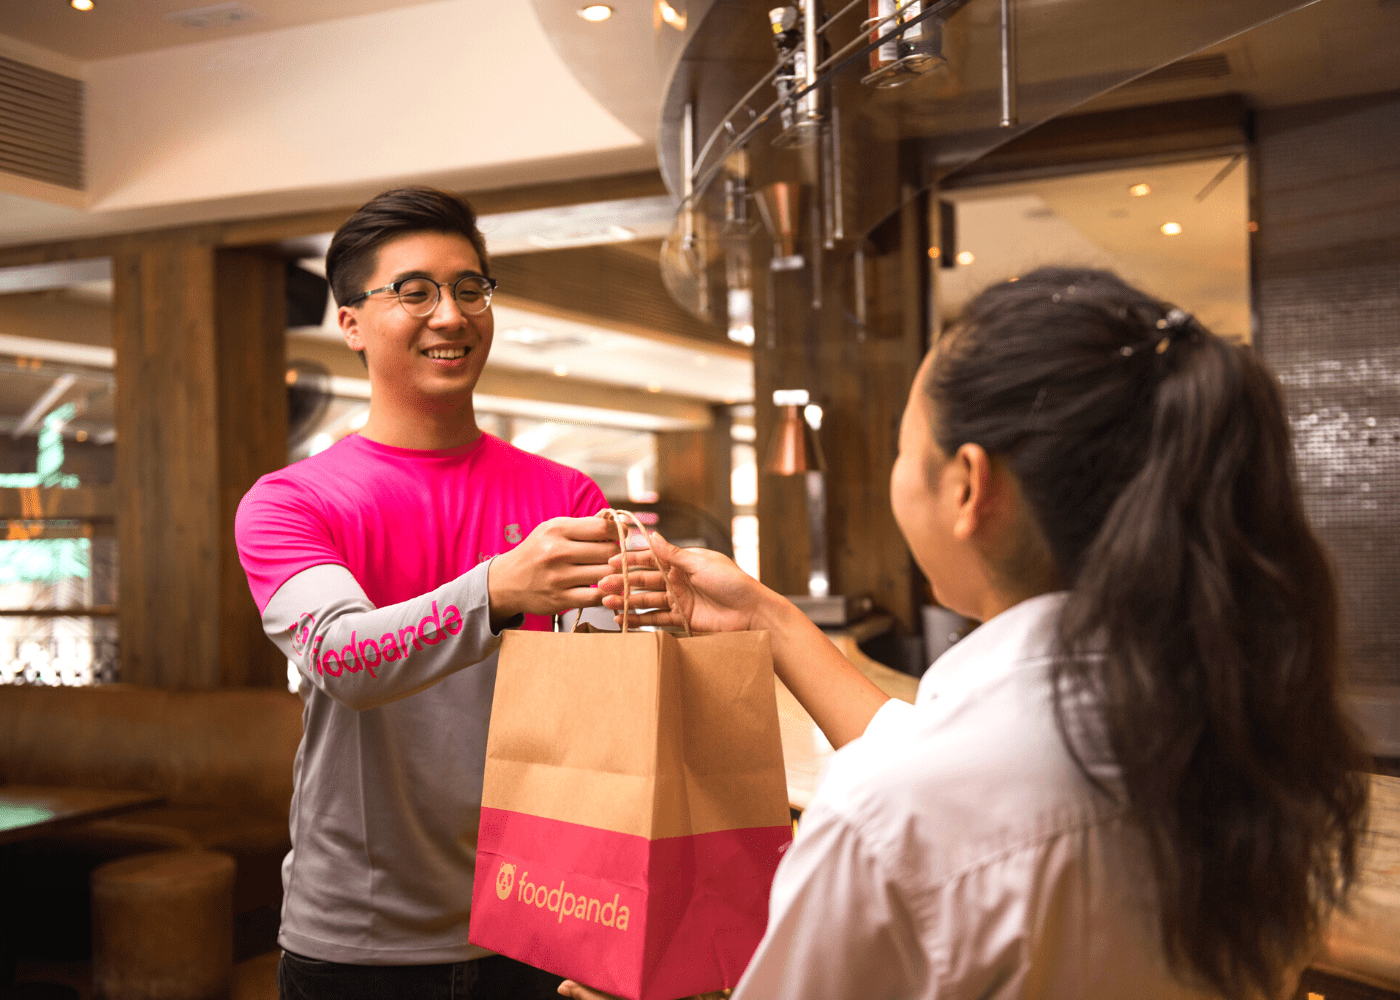 foodpanda | No more supermarket runs: Get your buys delivered in 15 mins and shop online 24/7